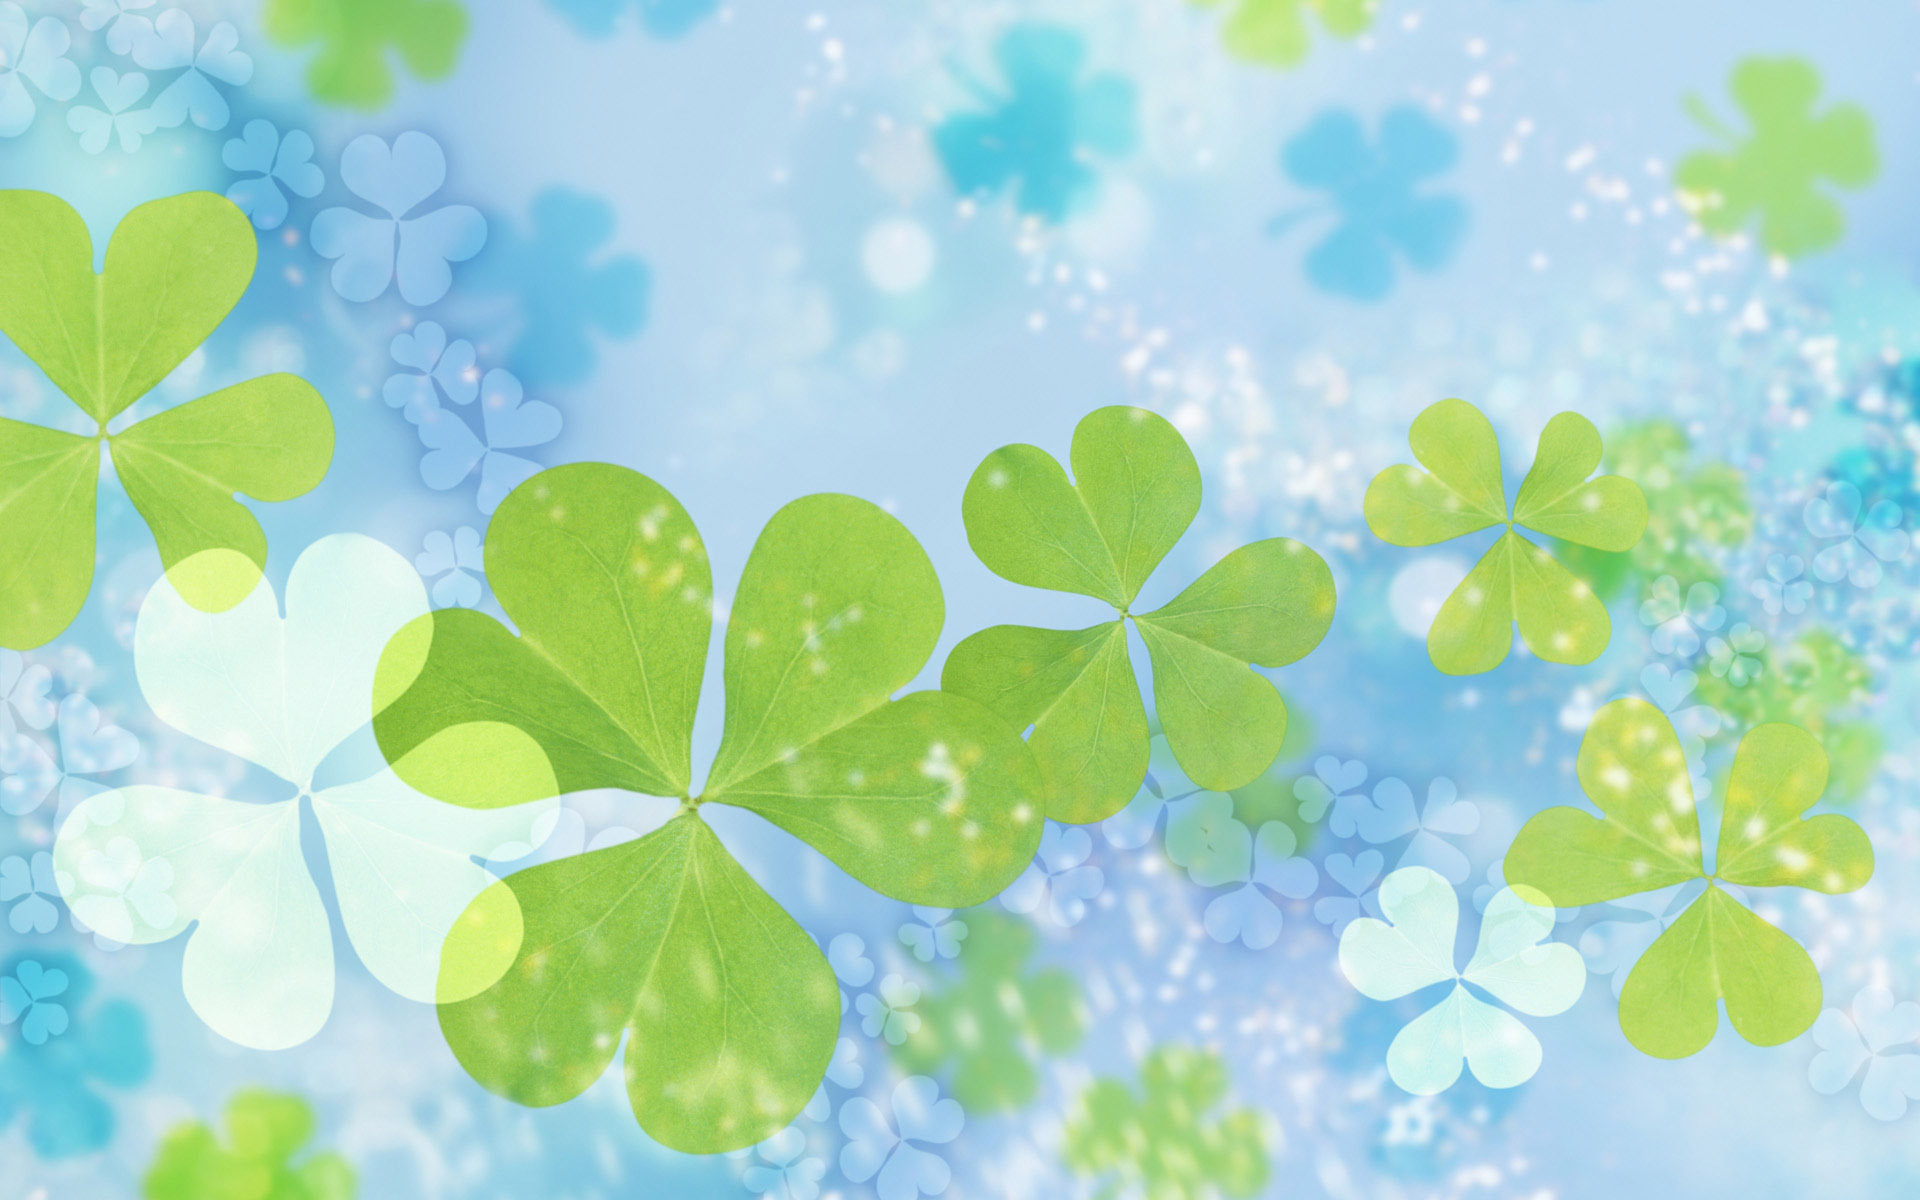 Saint Patricks Day Wallpapers   Wallpaper High Definition High 1920x1200